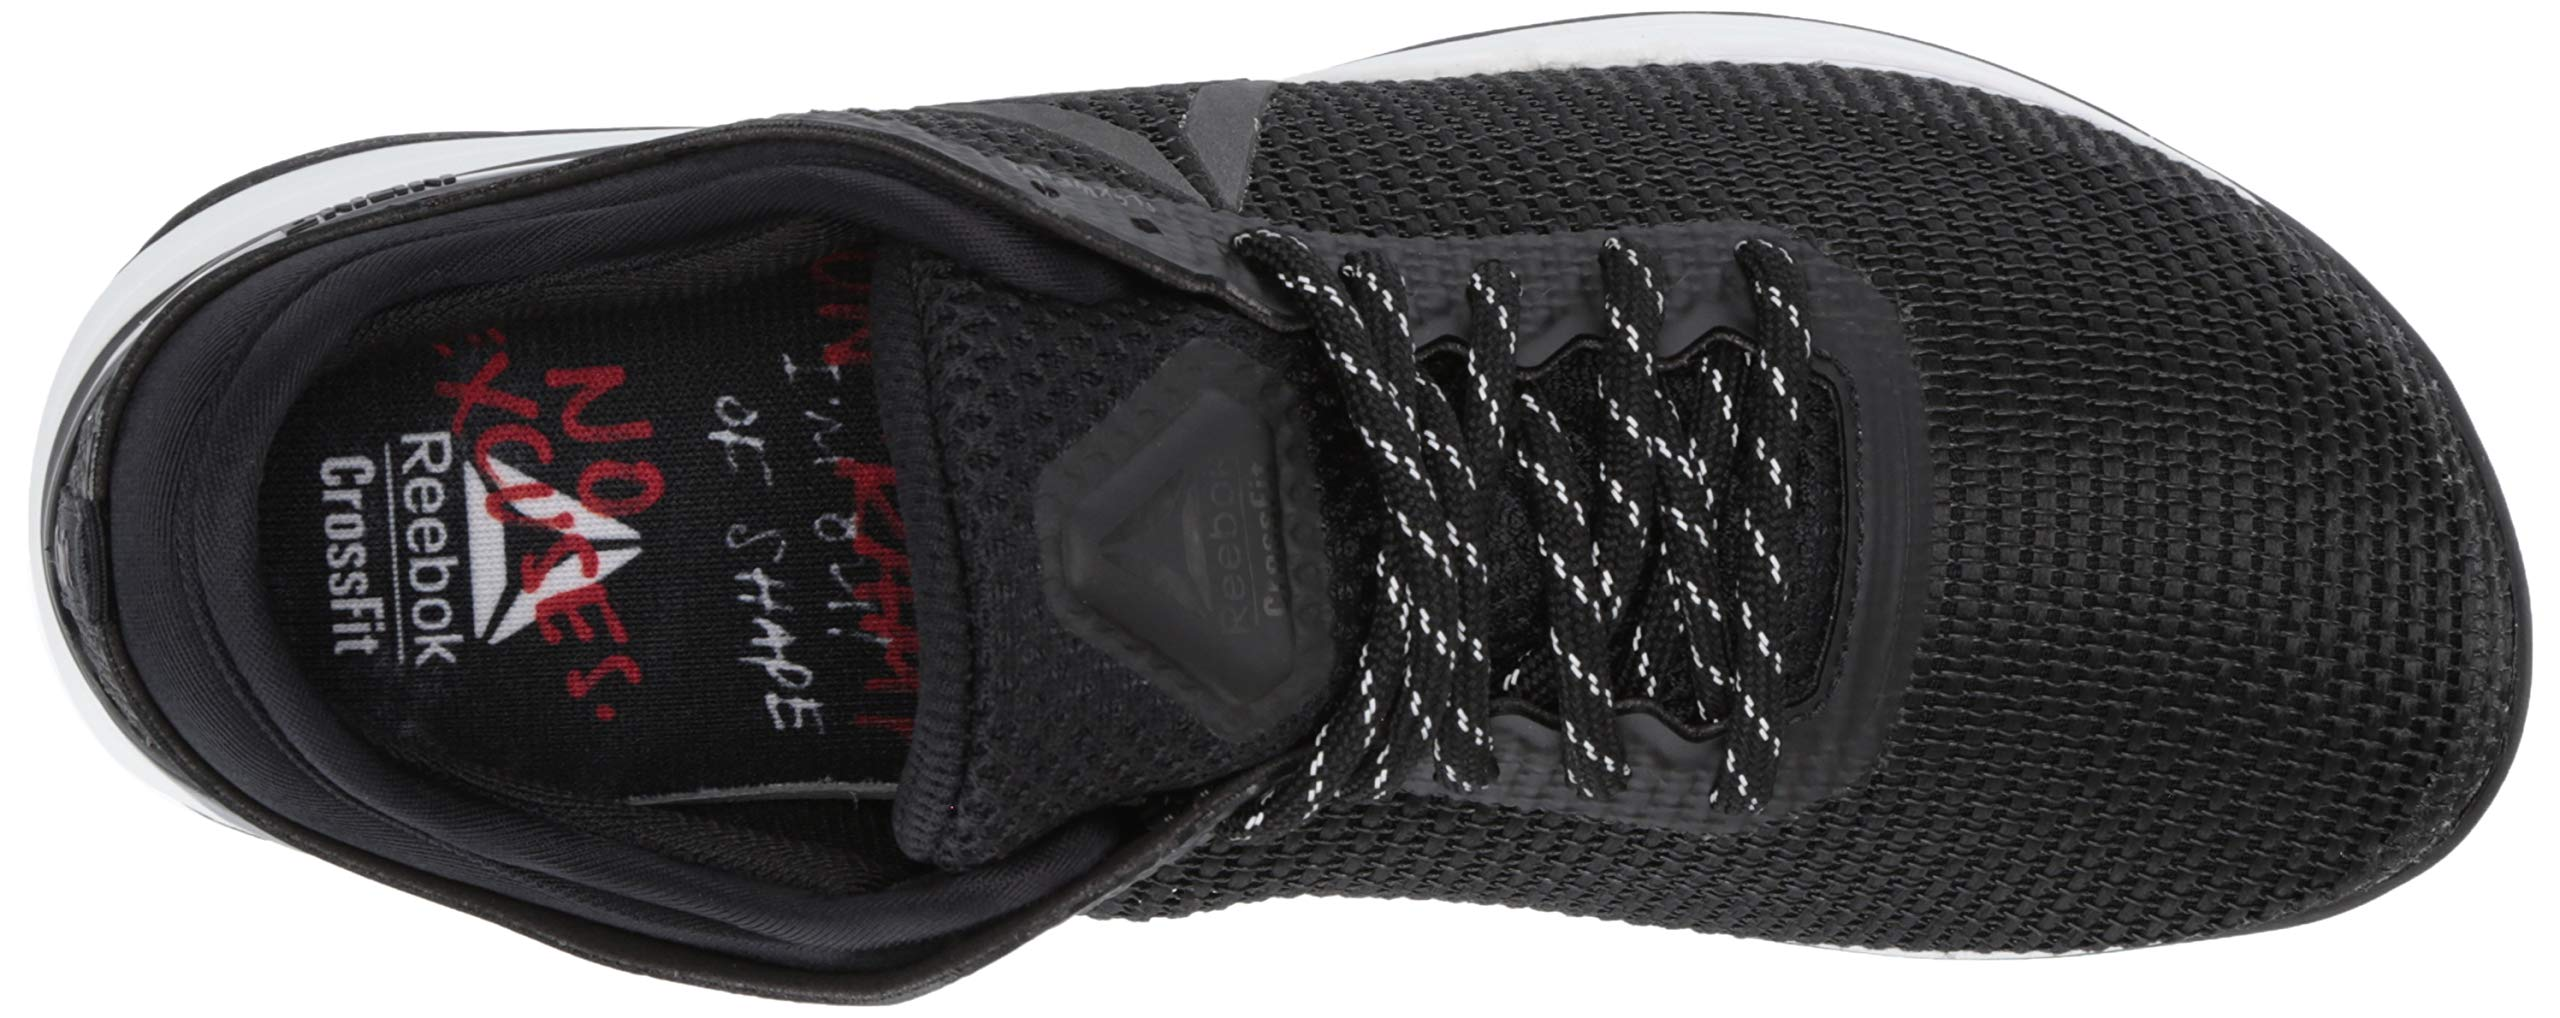 Reebok Women's CROSSFIT Nano 8.0 Flexweave Cross Trainer, Black/White, 5 M US by Reebok (Image #12)